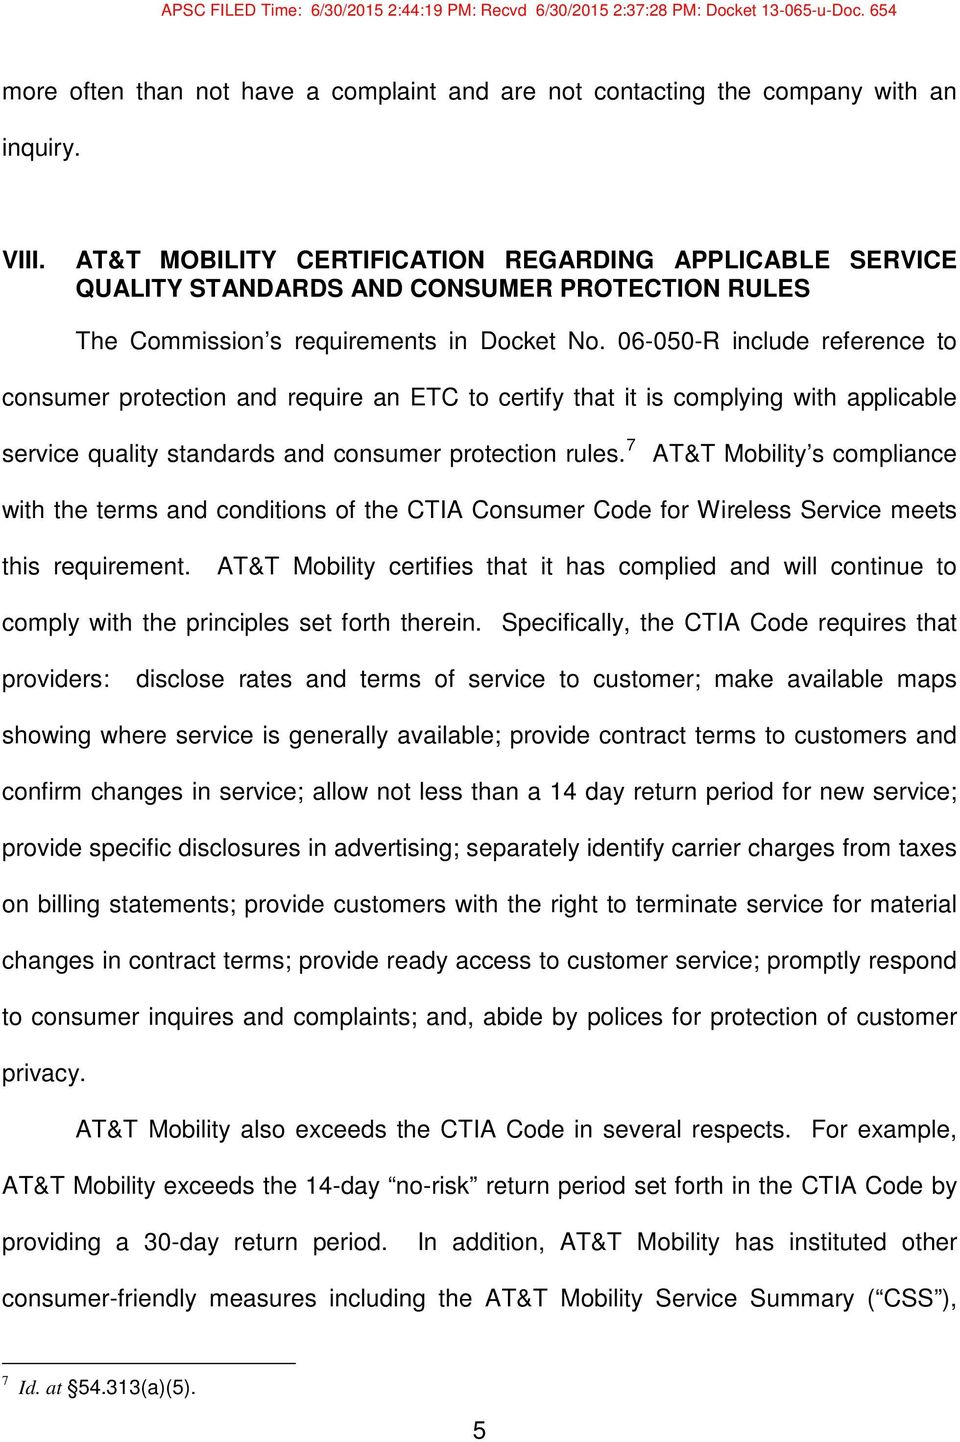 06-050-R include reference to consumer protection and require an ETC to certify that it is complying with applicable service quality standards and consumer protection rules.